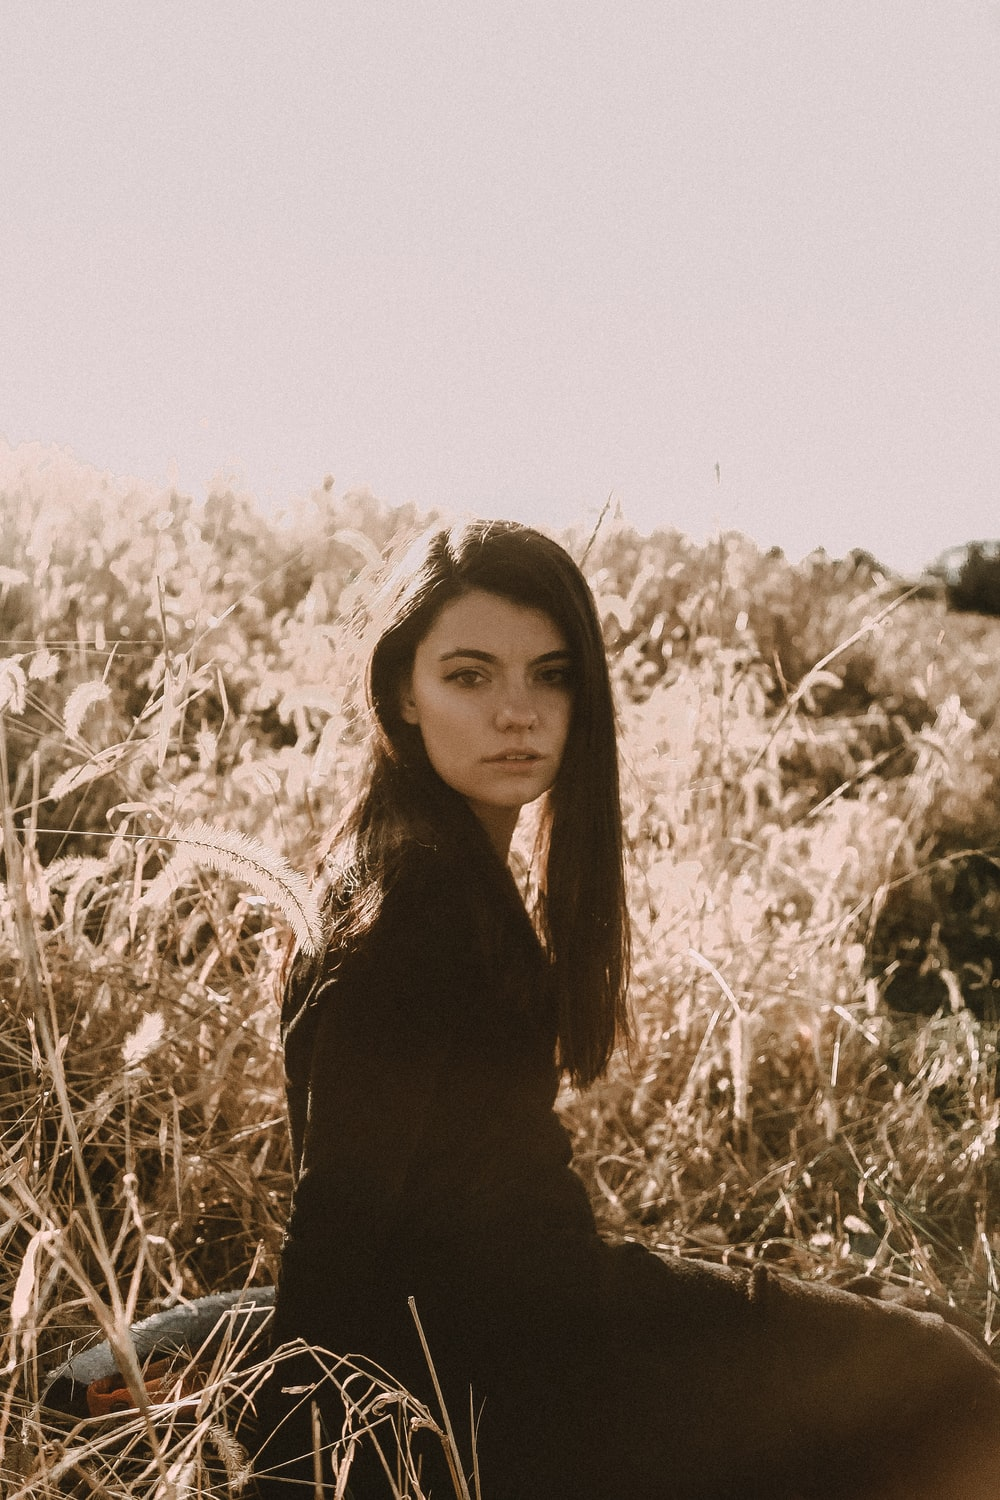 sepia photography of woman in long-leafed grass